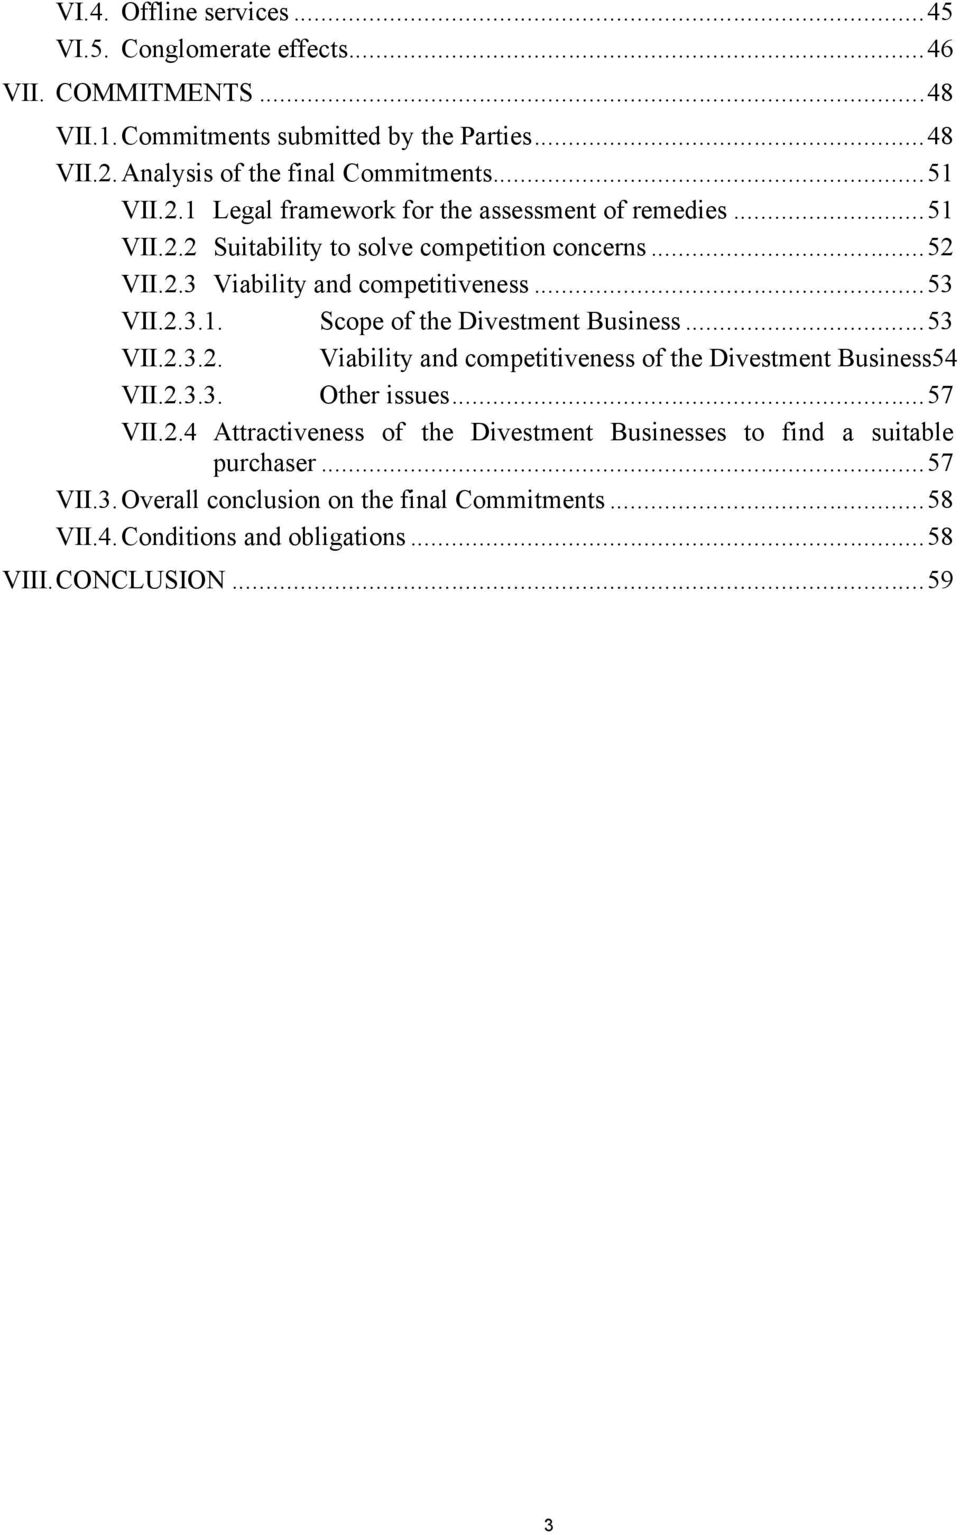 ..53 VII.2.3.2. Viability and competitiveness of the Divestment Business54 VII.2.3.3. Other issues...57 VII.2.4 Attractiveness of the Divestment Businesses to find a suitable purchaser.